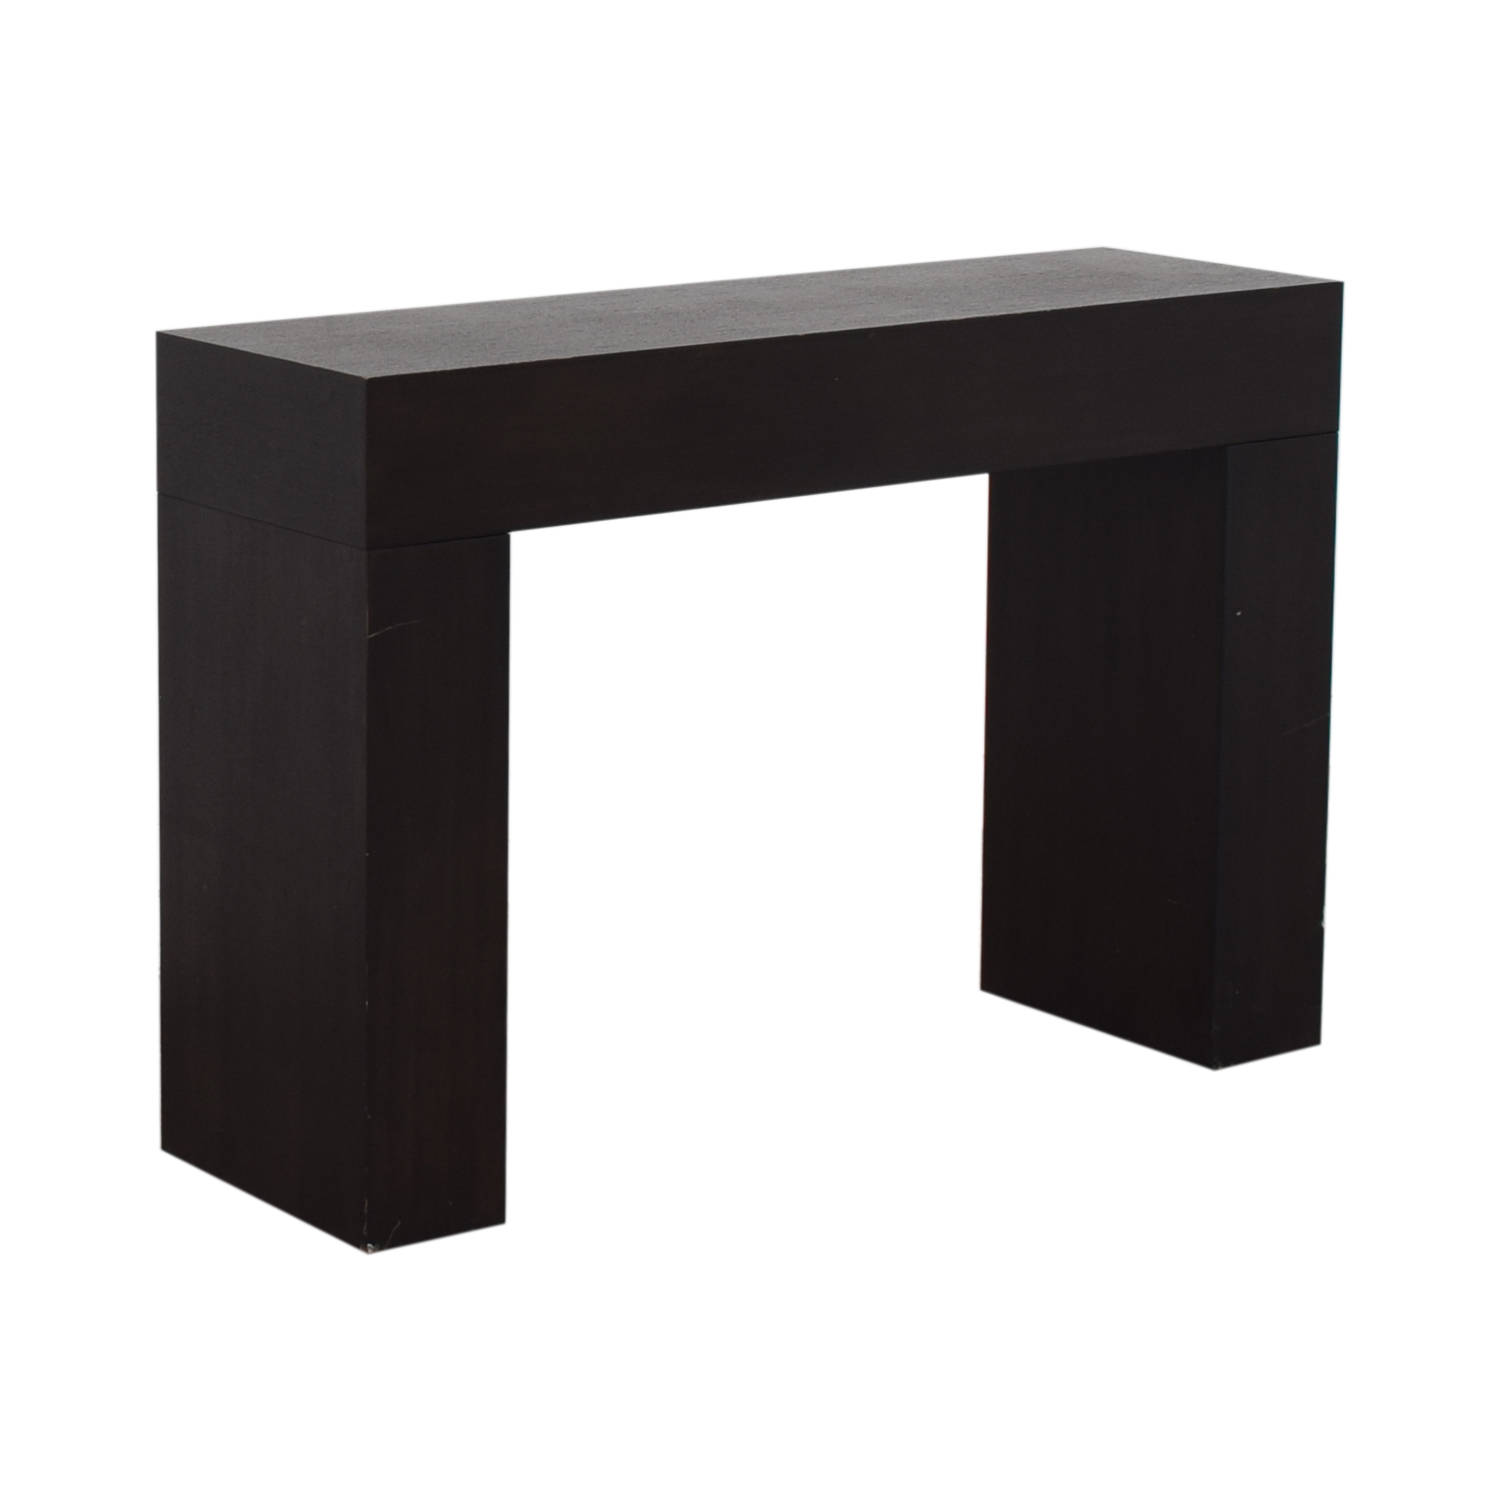 West Elm West Elm Chunky Console Table used